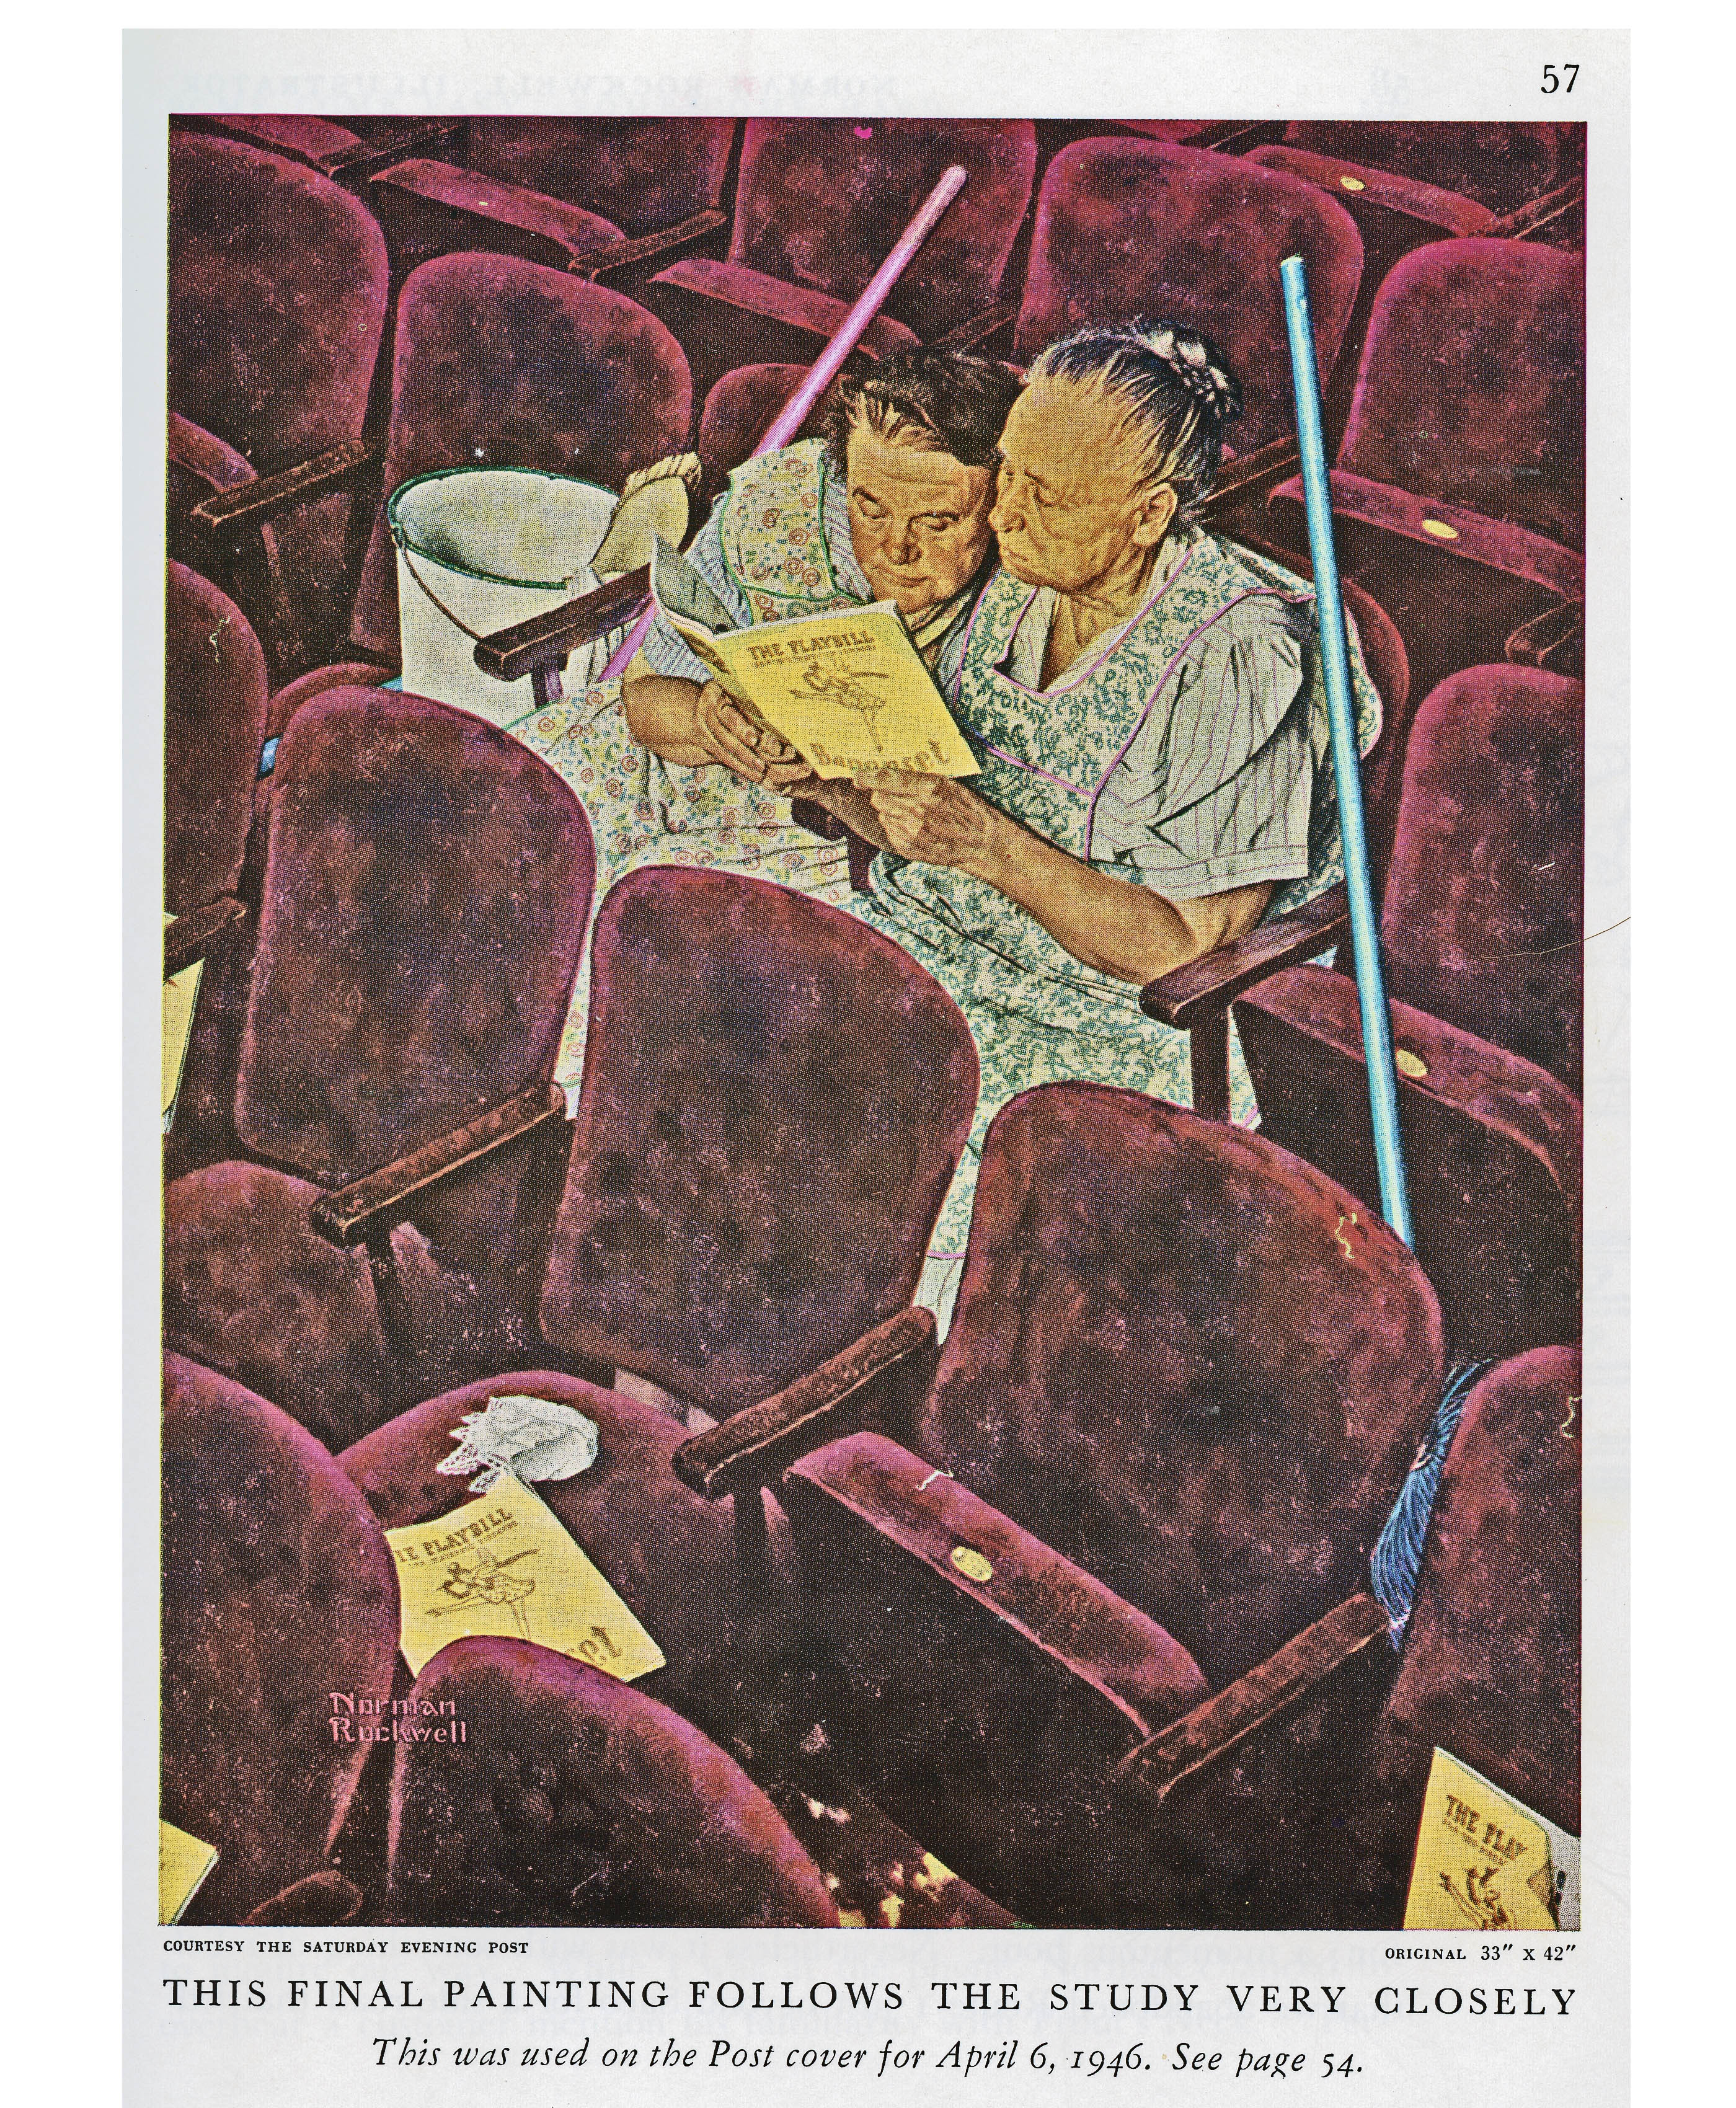 Norman Rockwell template on a 14x17 inch page